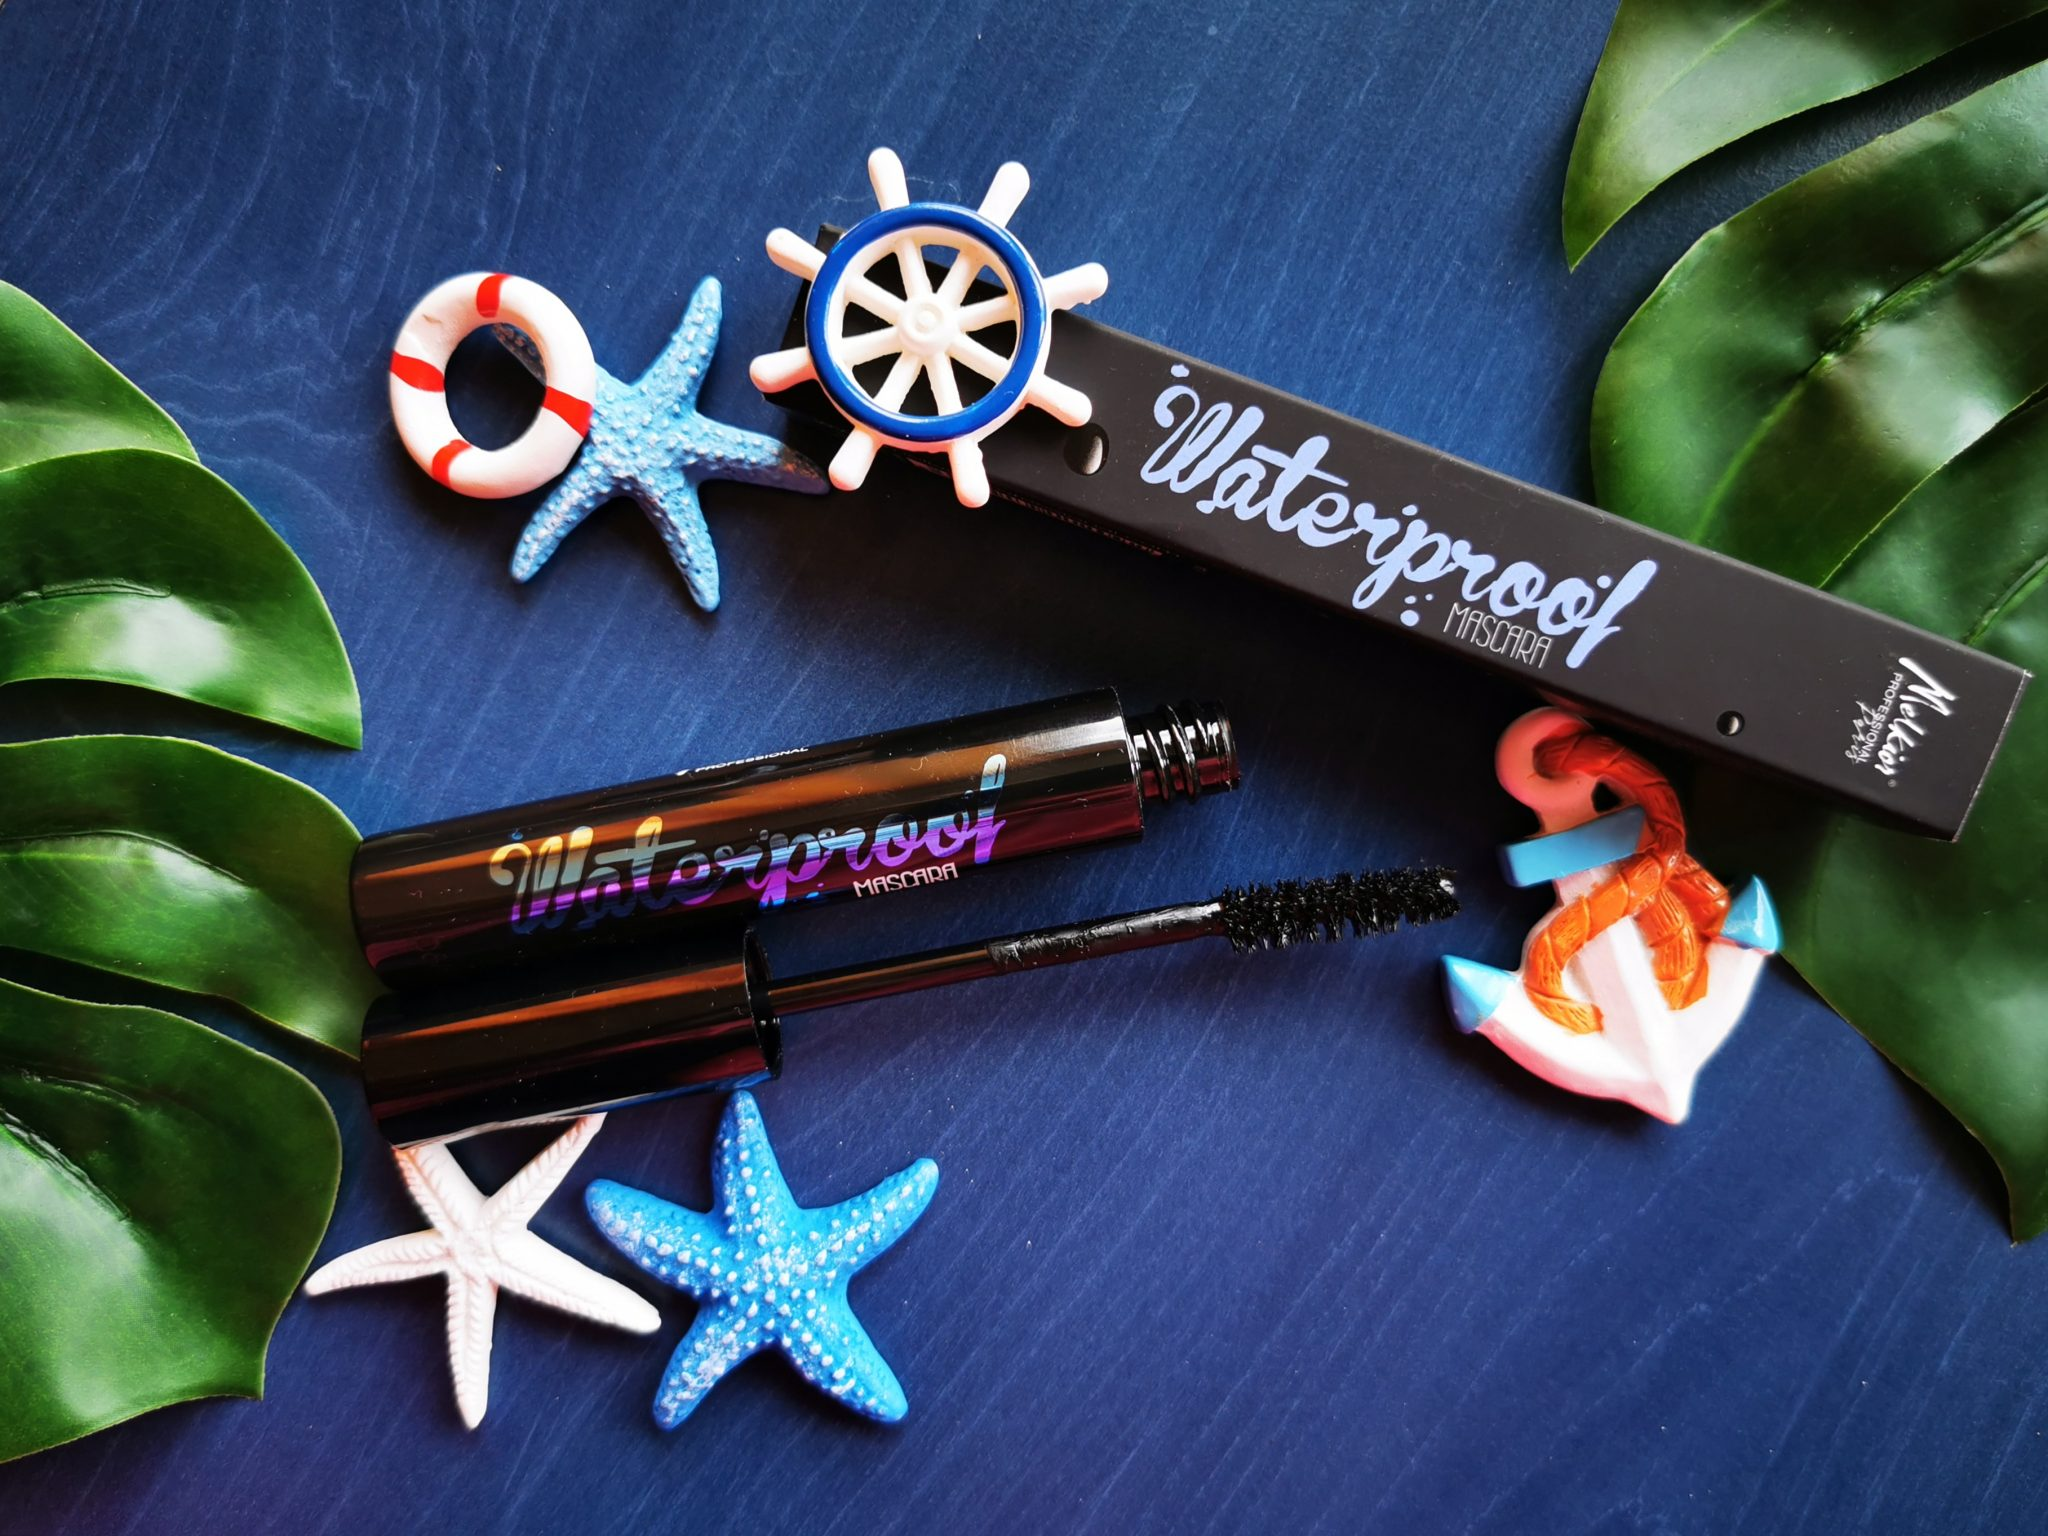 melkior waterproof mascara